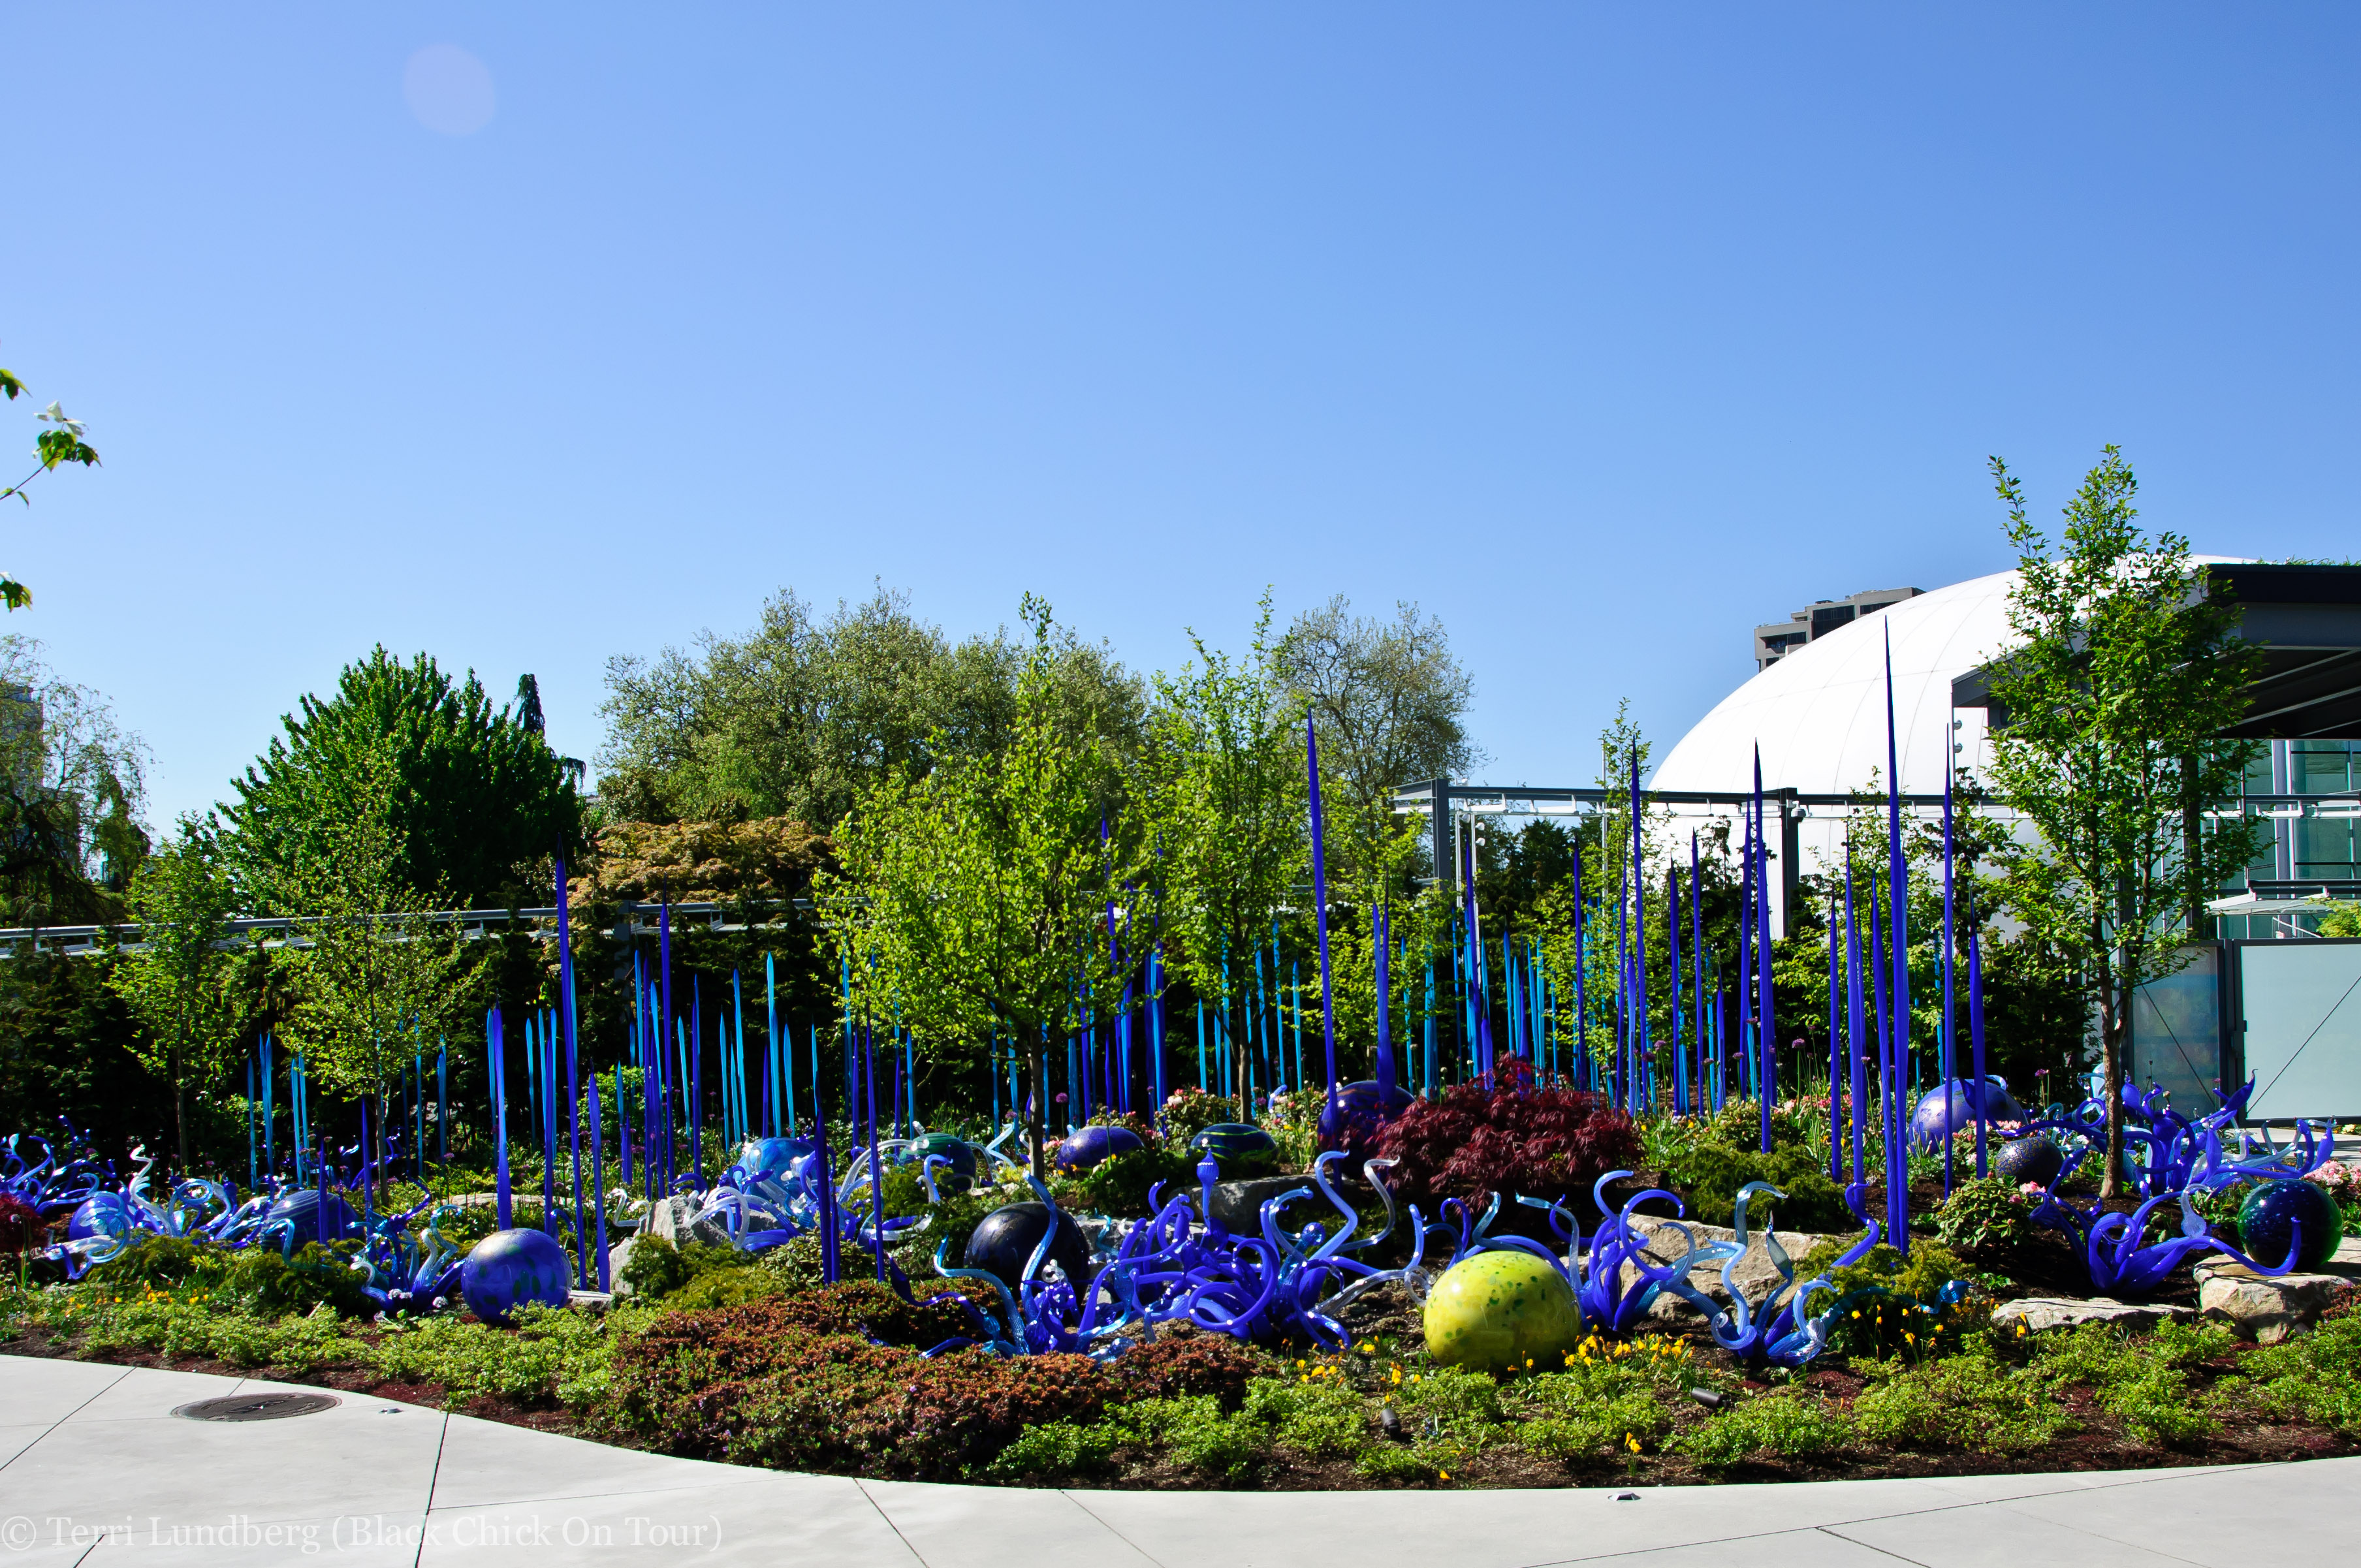 chihuly garden and glass - photo #7